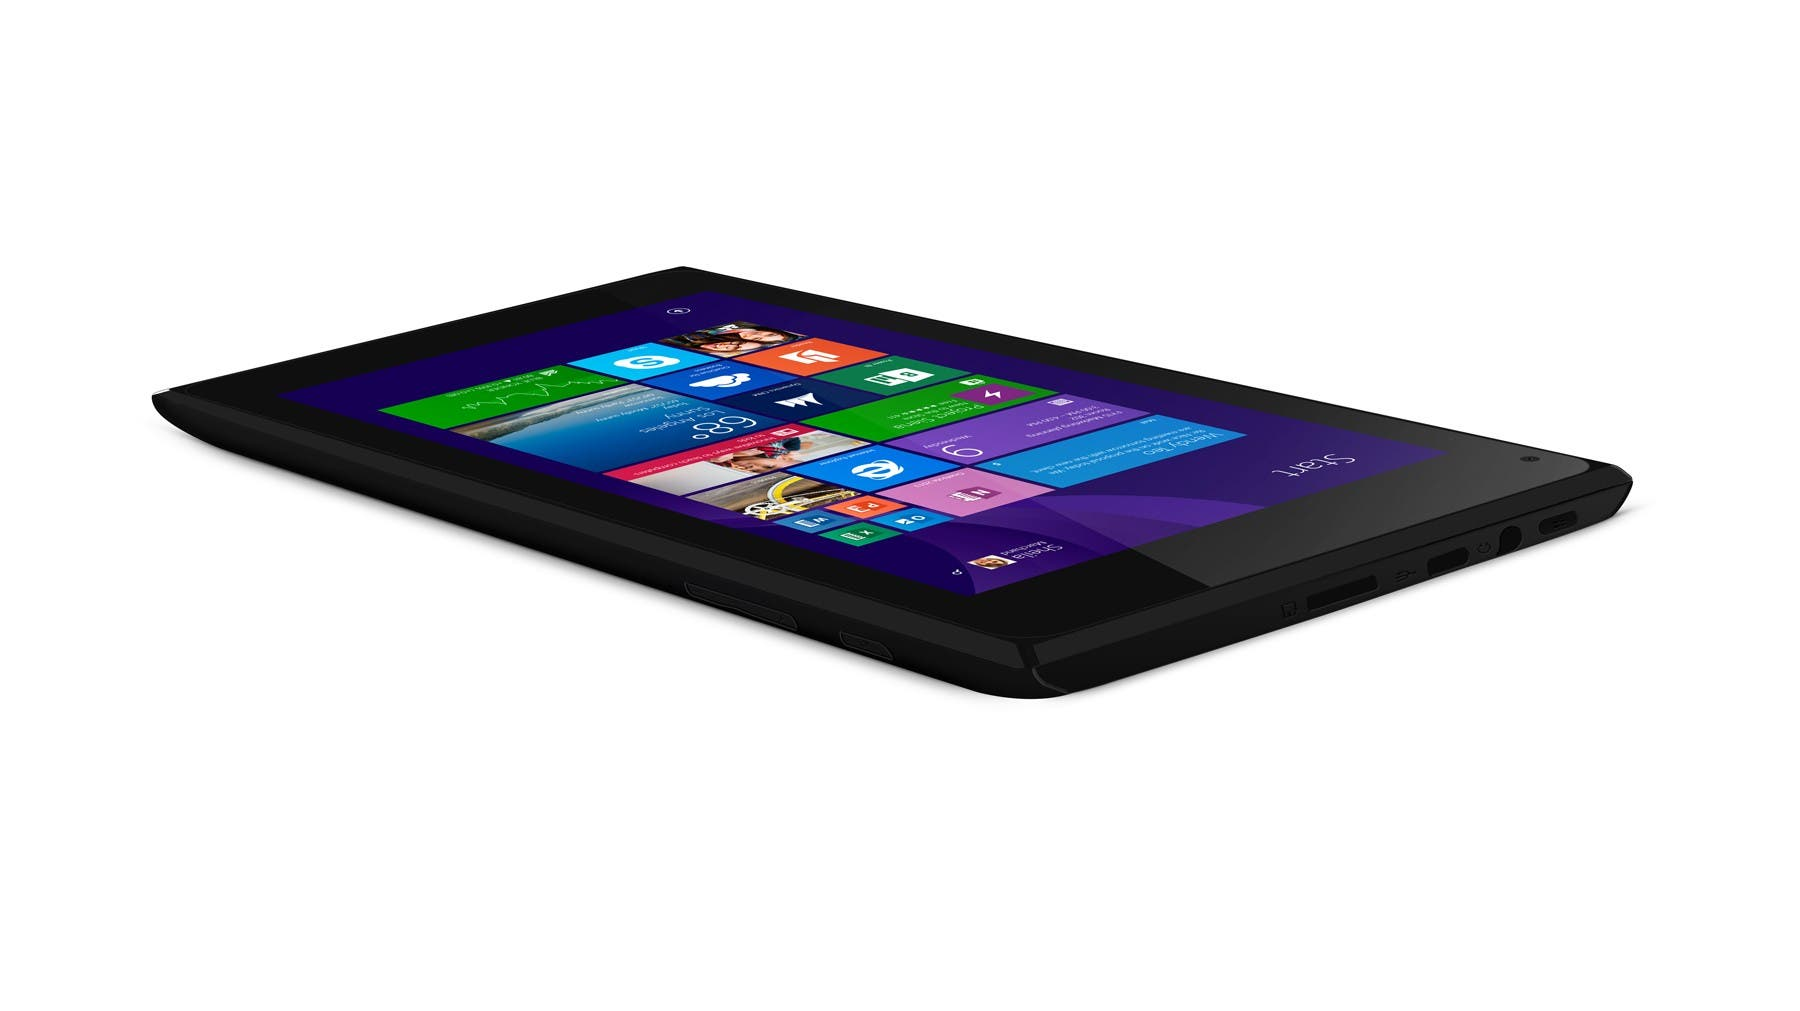 Allview WI7: 7-inch Tablet mit Windows 8.1 für 70 Euro